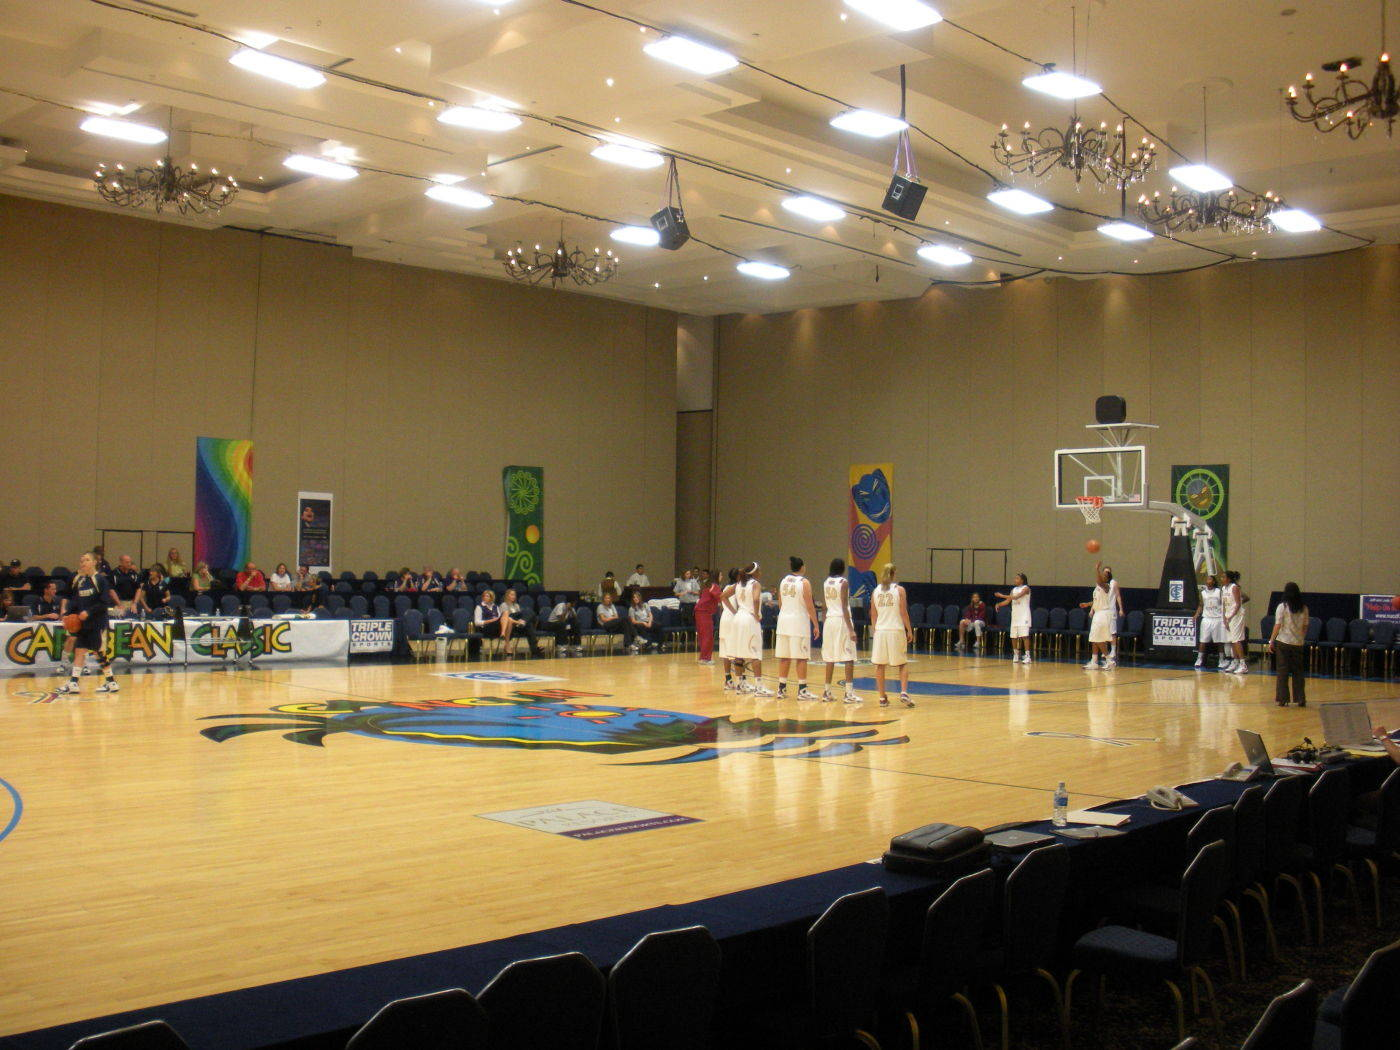 All games at the Caribbean Classic are being played in a converted ballroom.